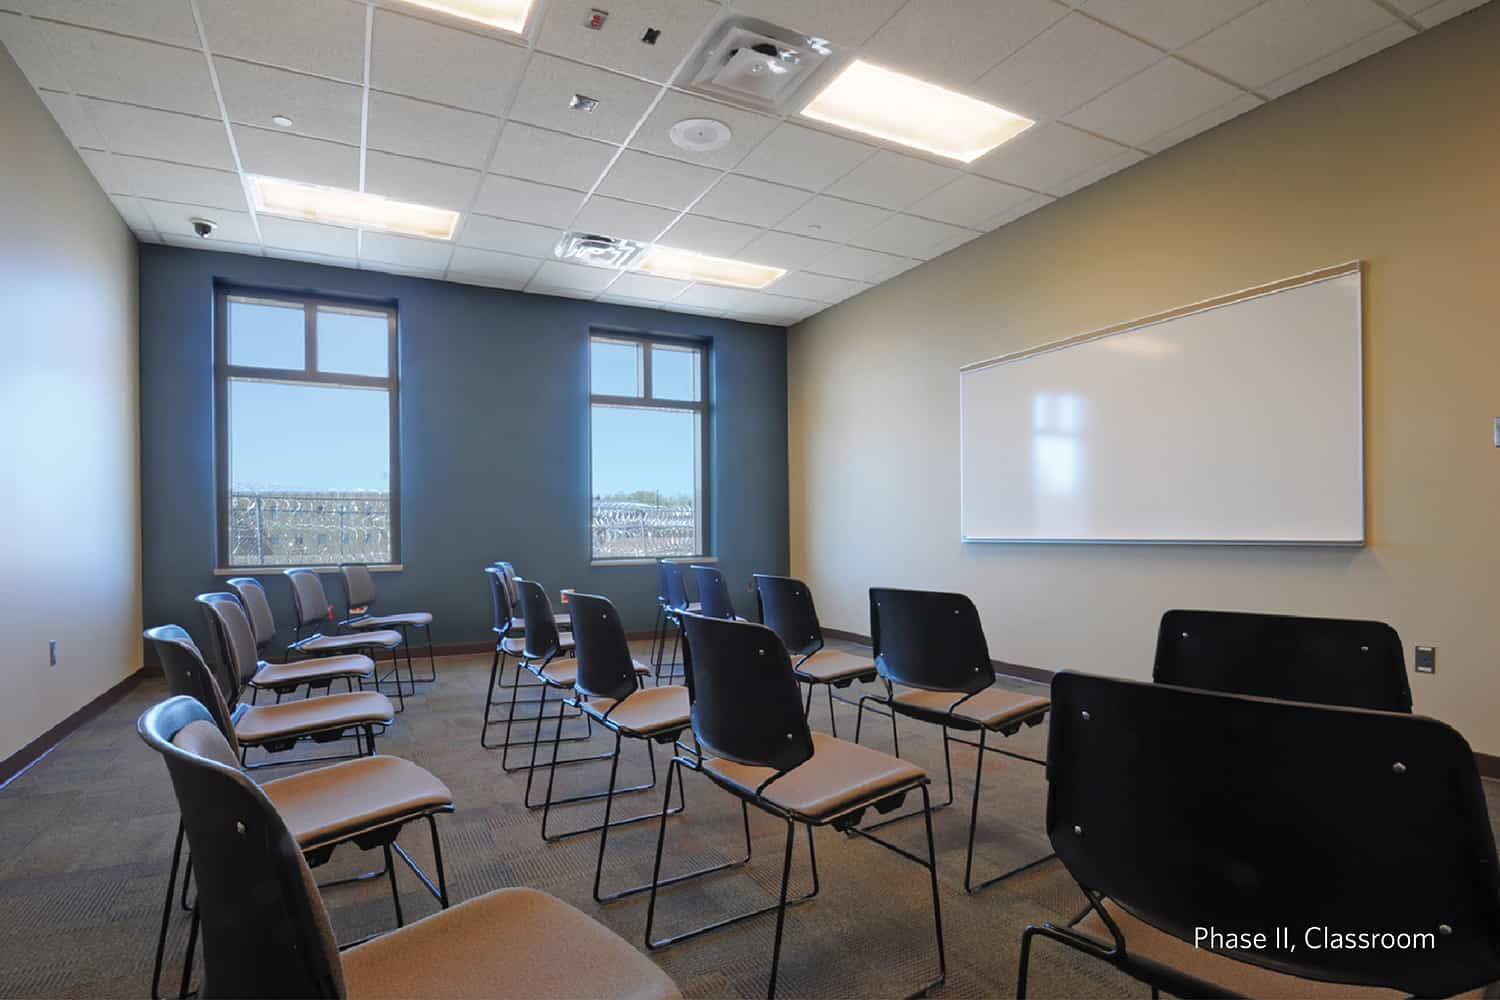 A sex offender facility classroom with moveable chairs.